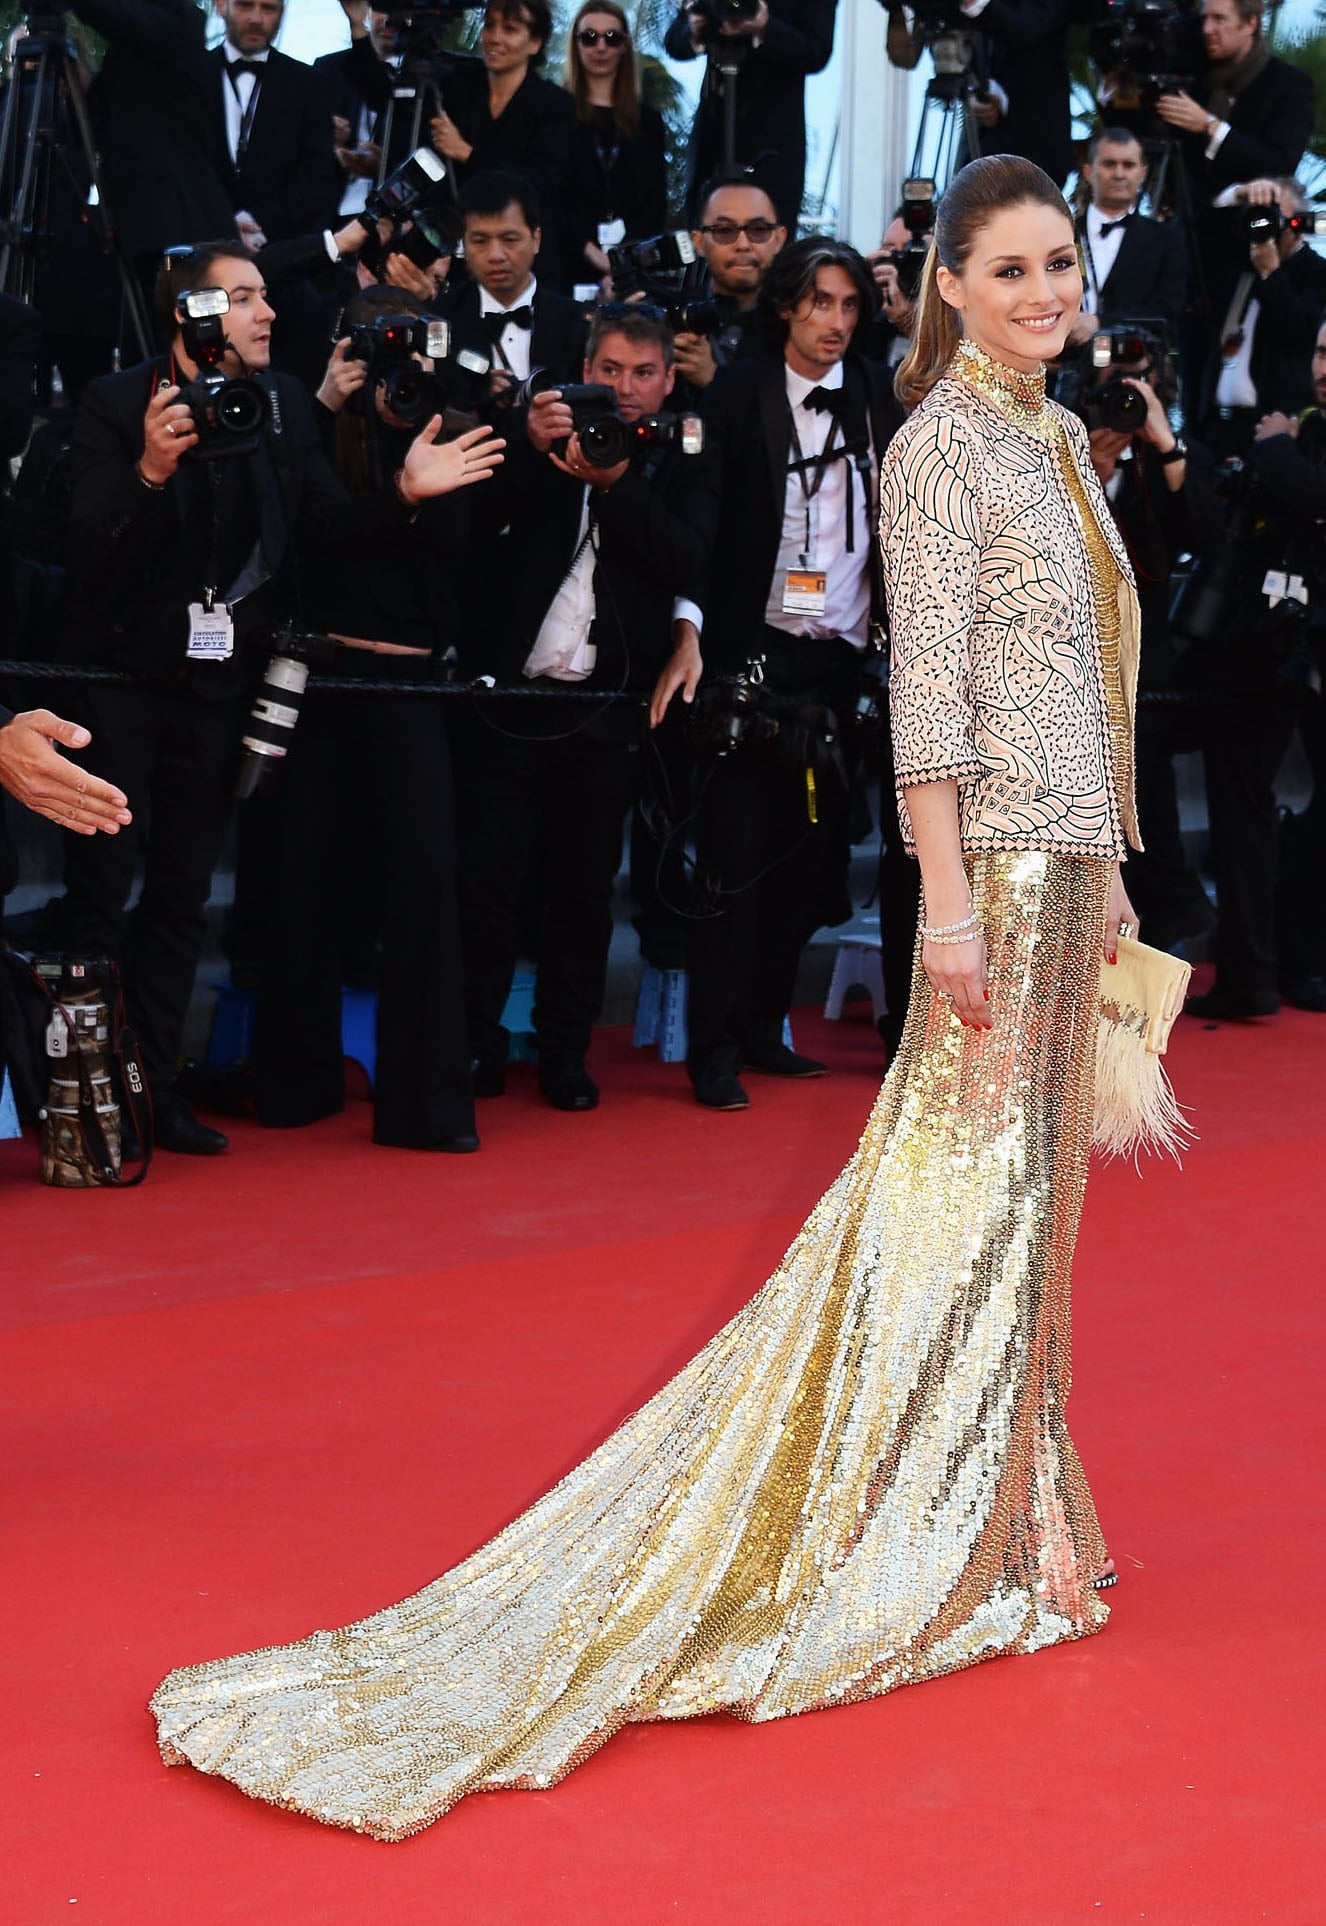 Proving she really is a style golden girl, Olivia Palermo went full-carat-ahead in a long Roberto Cavalli gown and jacket for the 2013 Immigrant premiere.